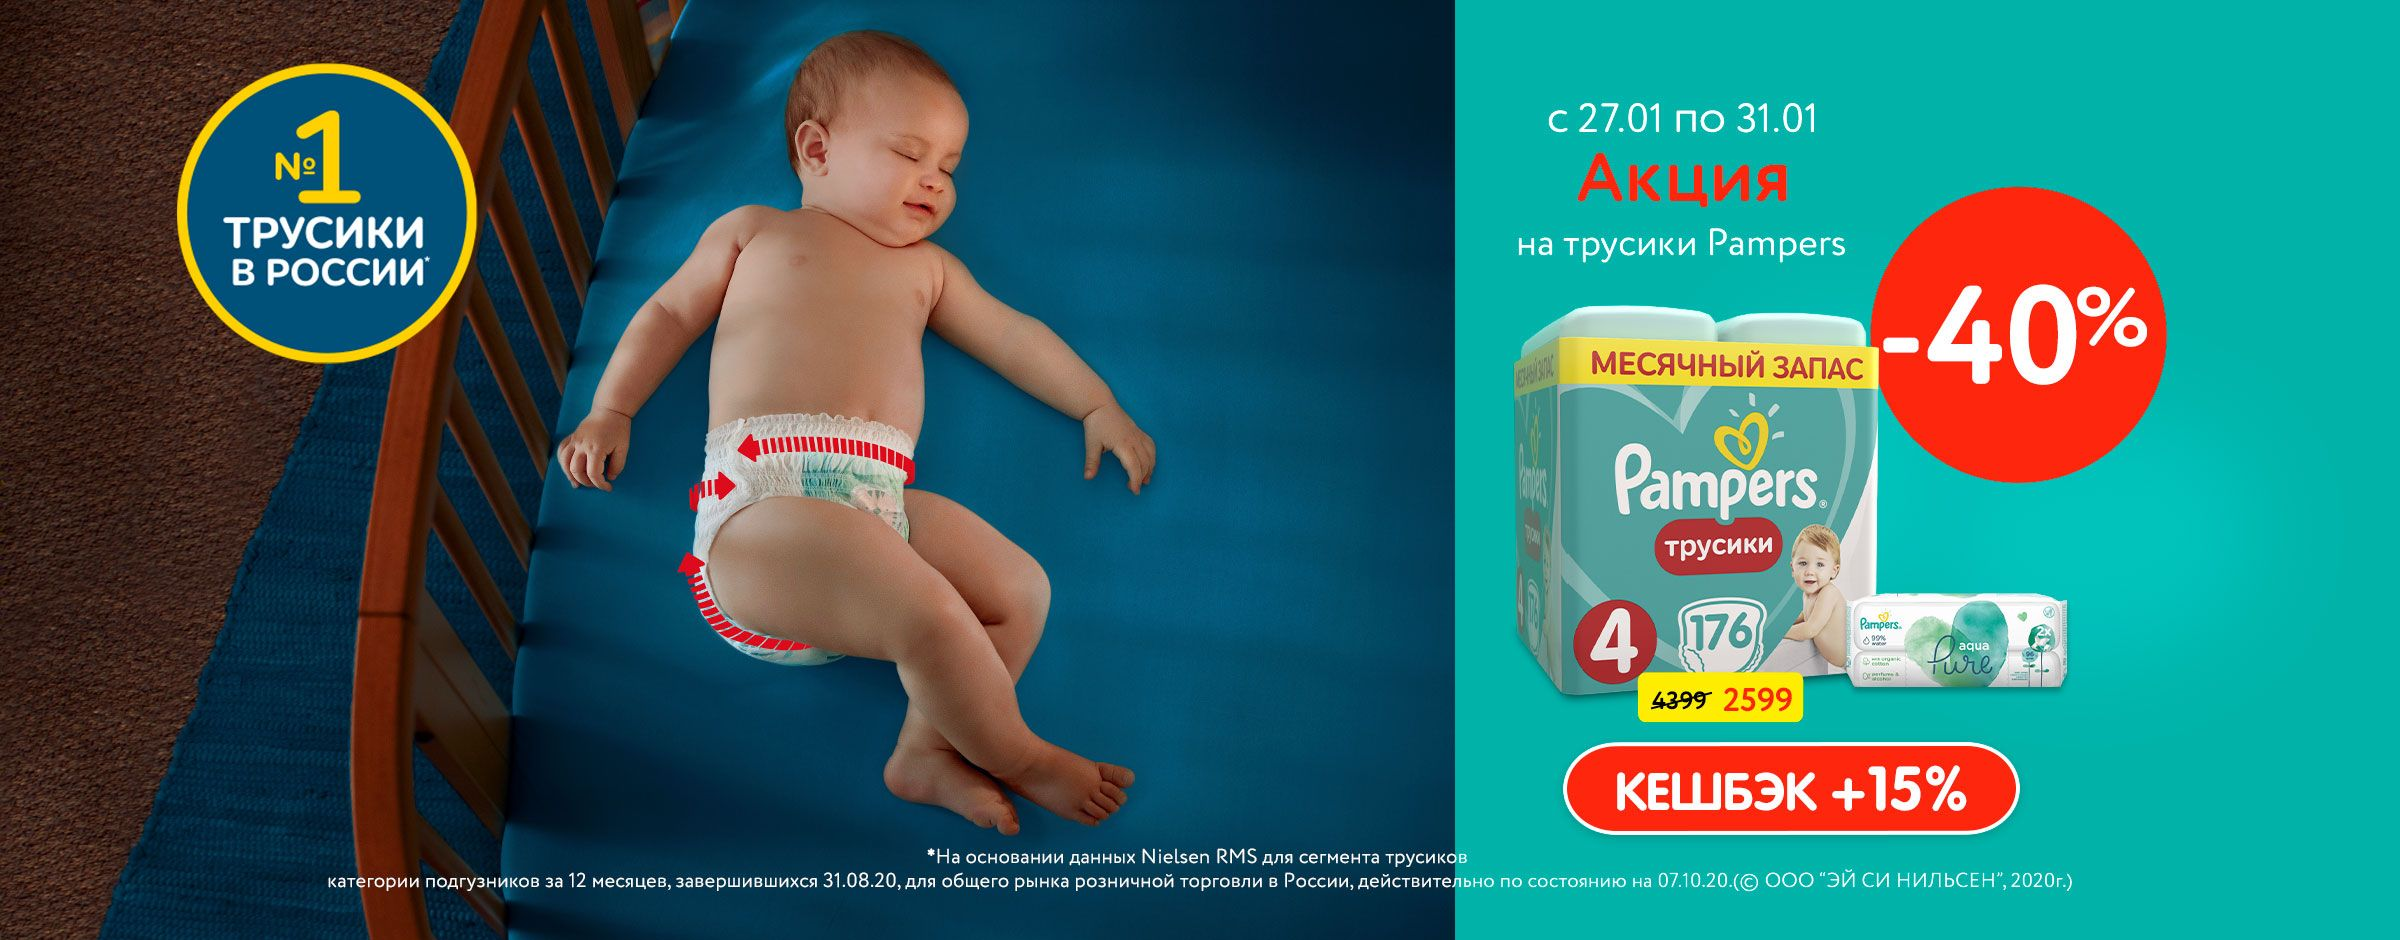 До 40% на Pampers Pants + кешбэк статика